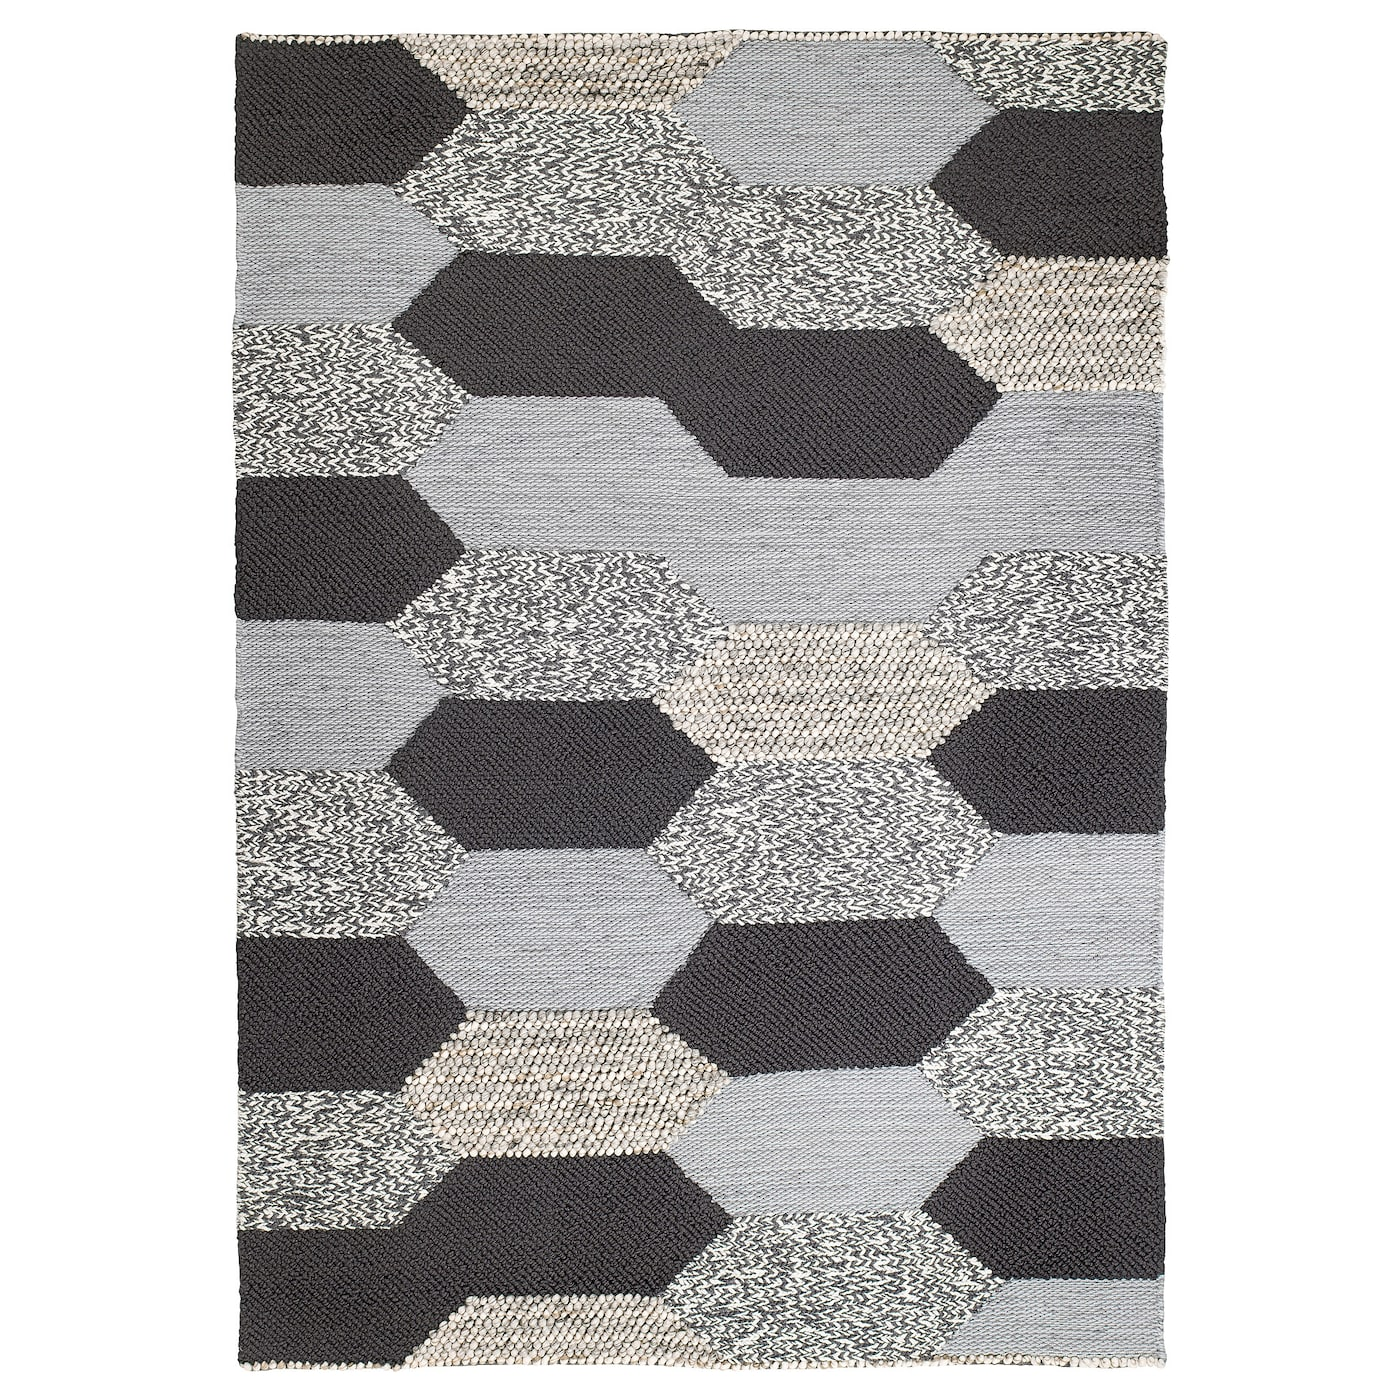 IKEA KOLLUND rug, flatwoven Handwoven by skilled craftspeople, each one is unique.